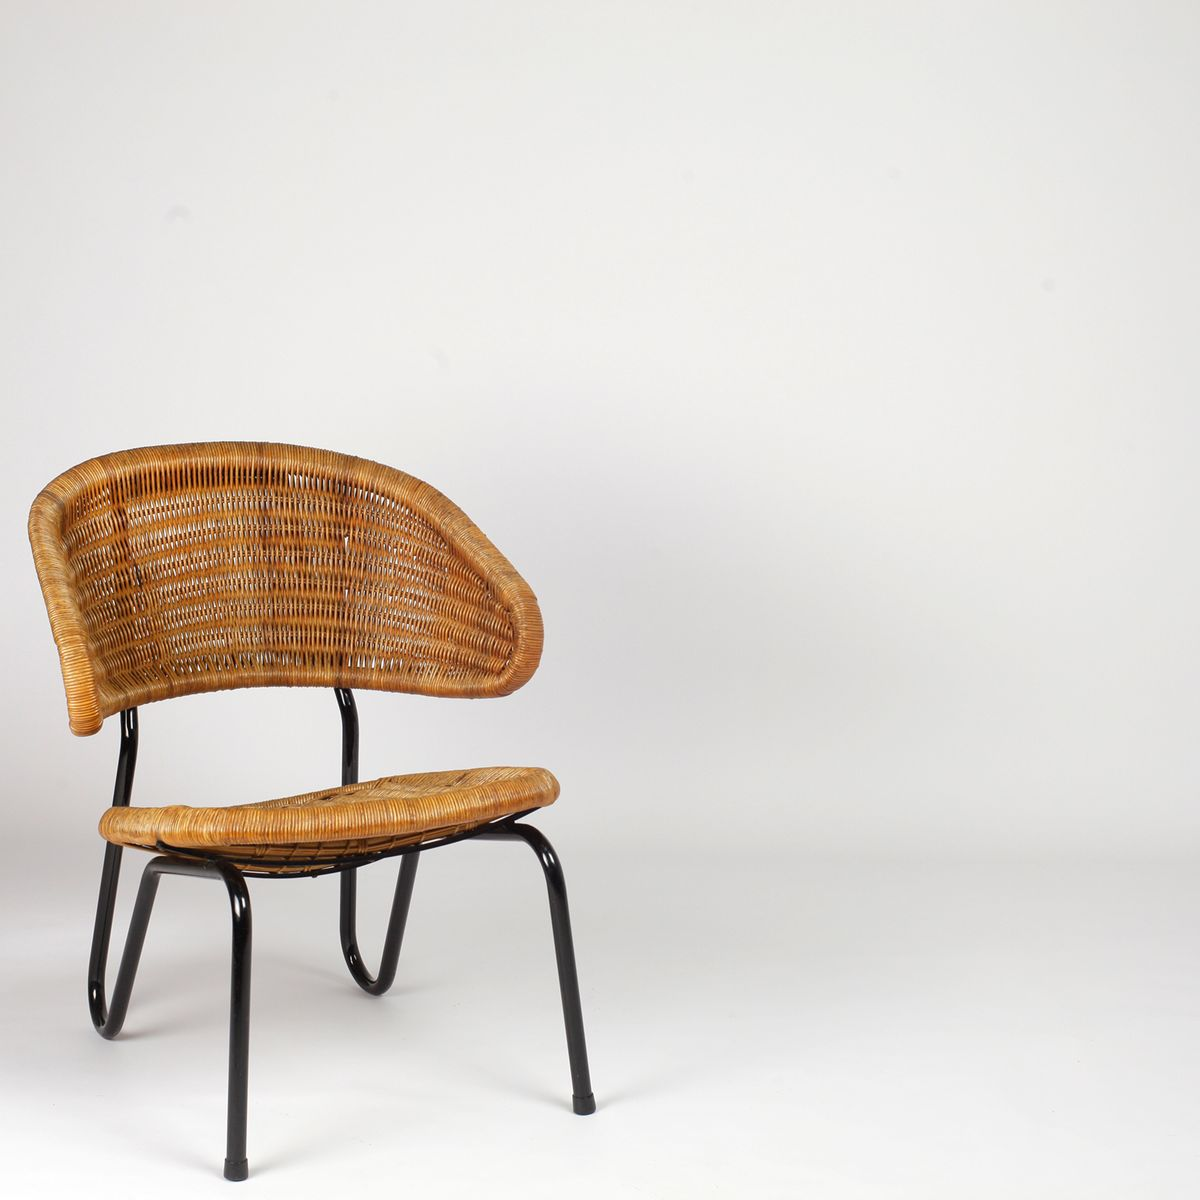 Dutch model 568 rattan chair by dirk van sliedregt for for Dutch design chair uk